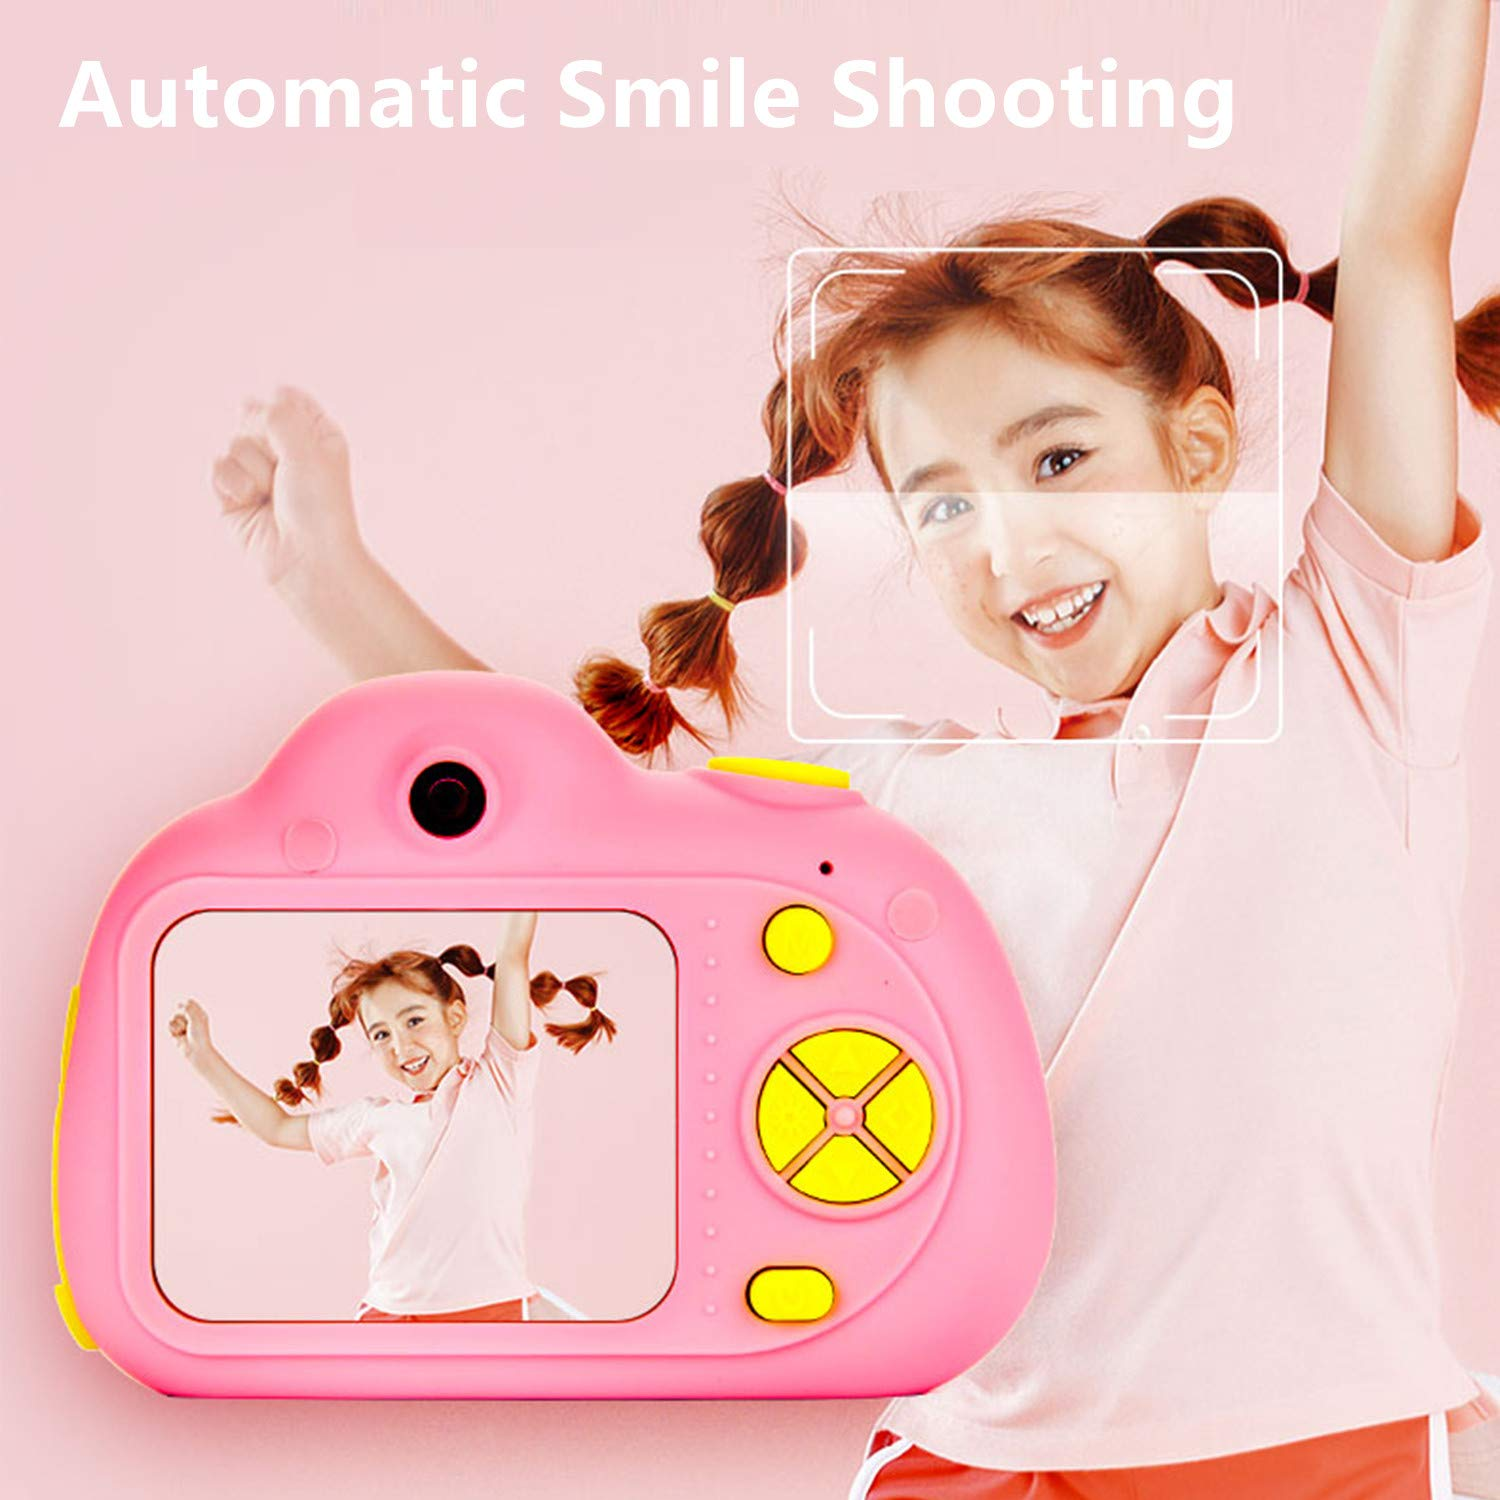 ESROVER Kids Digital Camera,2.0 Inch Screen 8MP Dual Shockproof Cameras Toys with Silicone Soft Cover Best Gifts Mini Selfie Camcorder for 4-8 Year Old Girls Boys Children by ESROVER (Image #6)